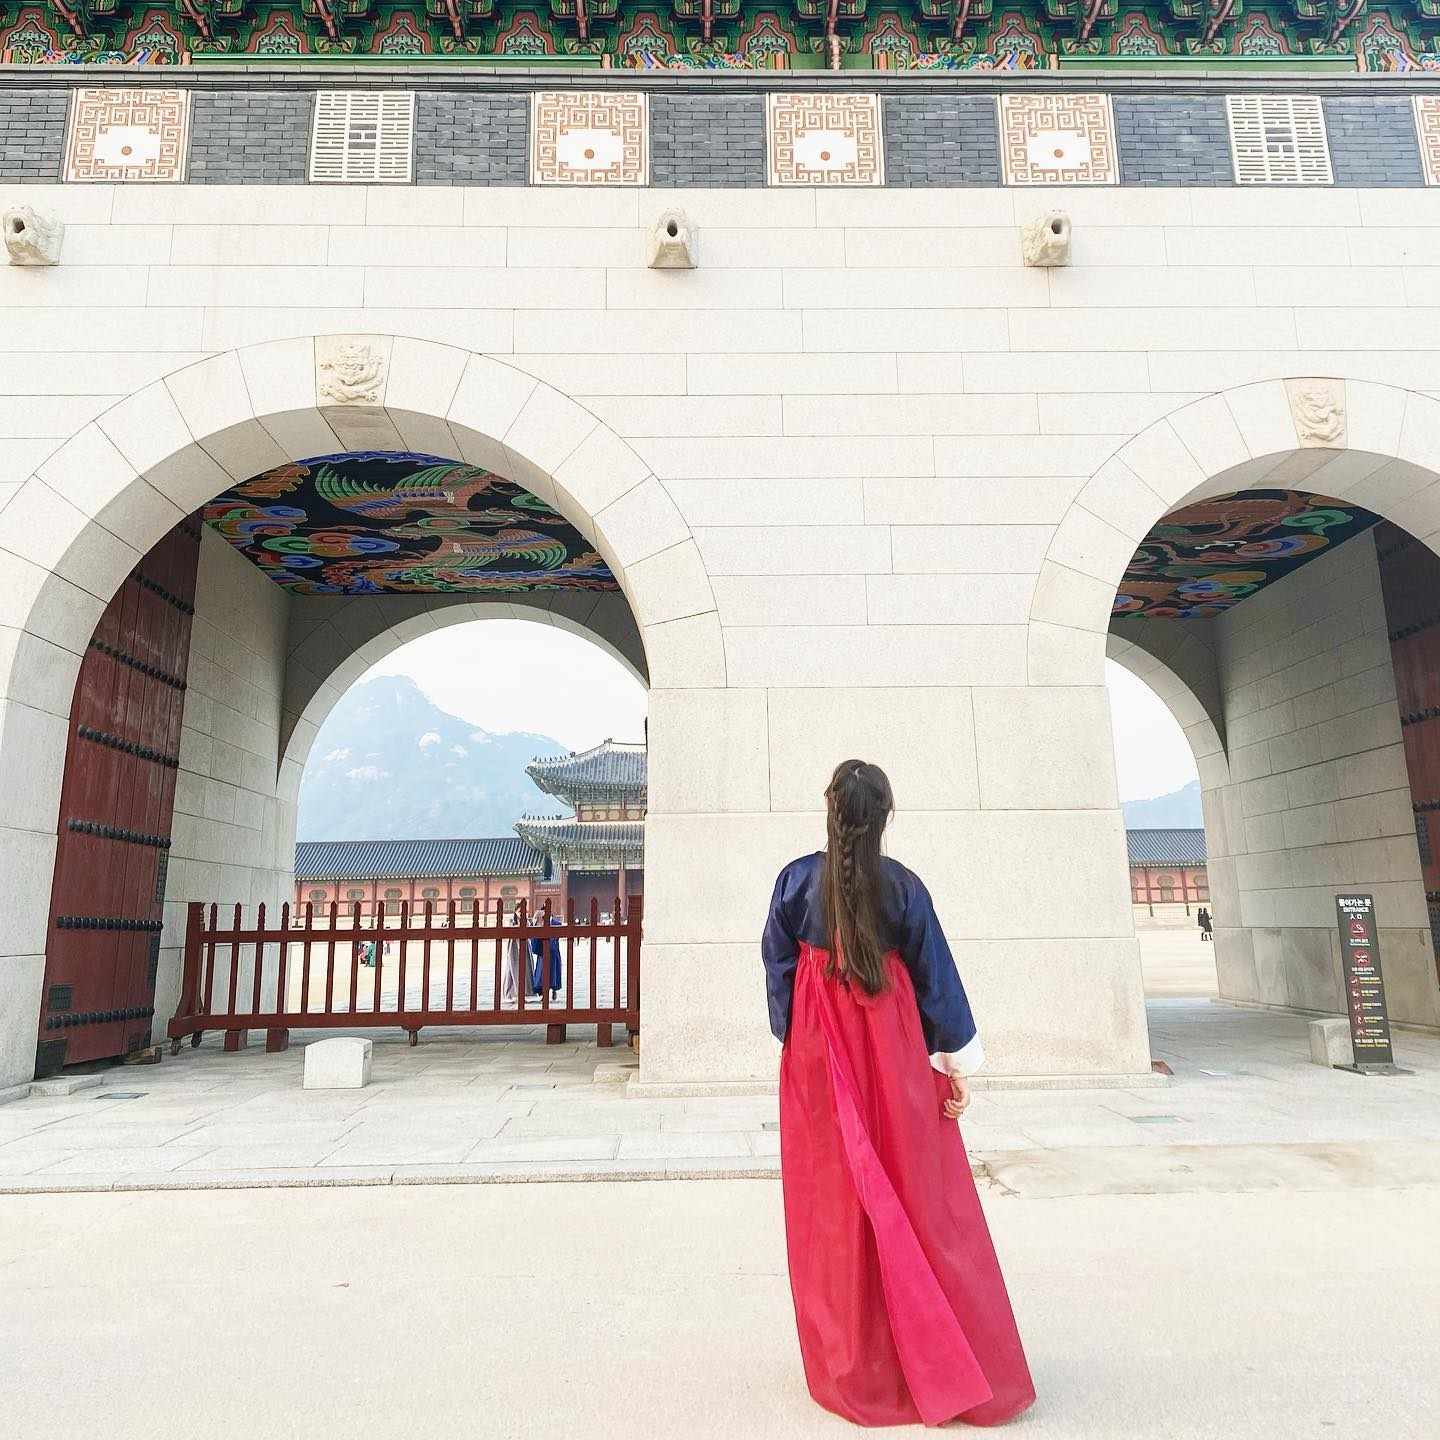 [Gyeongbokgung Palace] The first and largest royal palace built during Joseon…